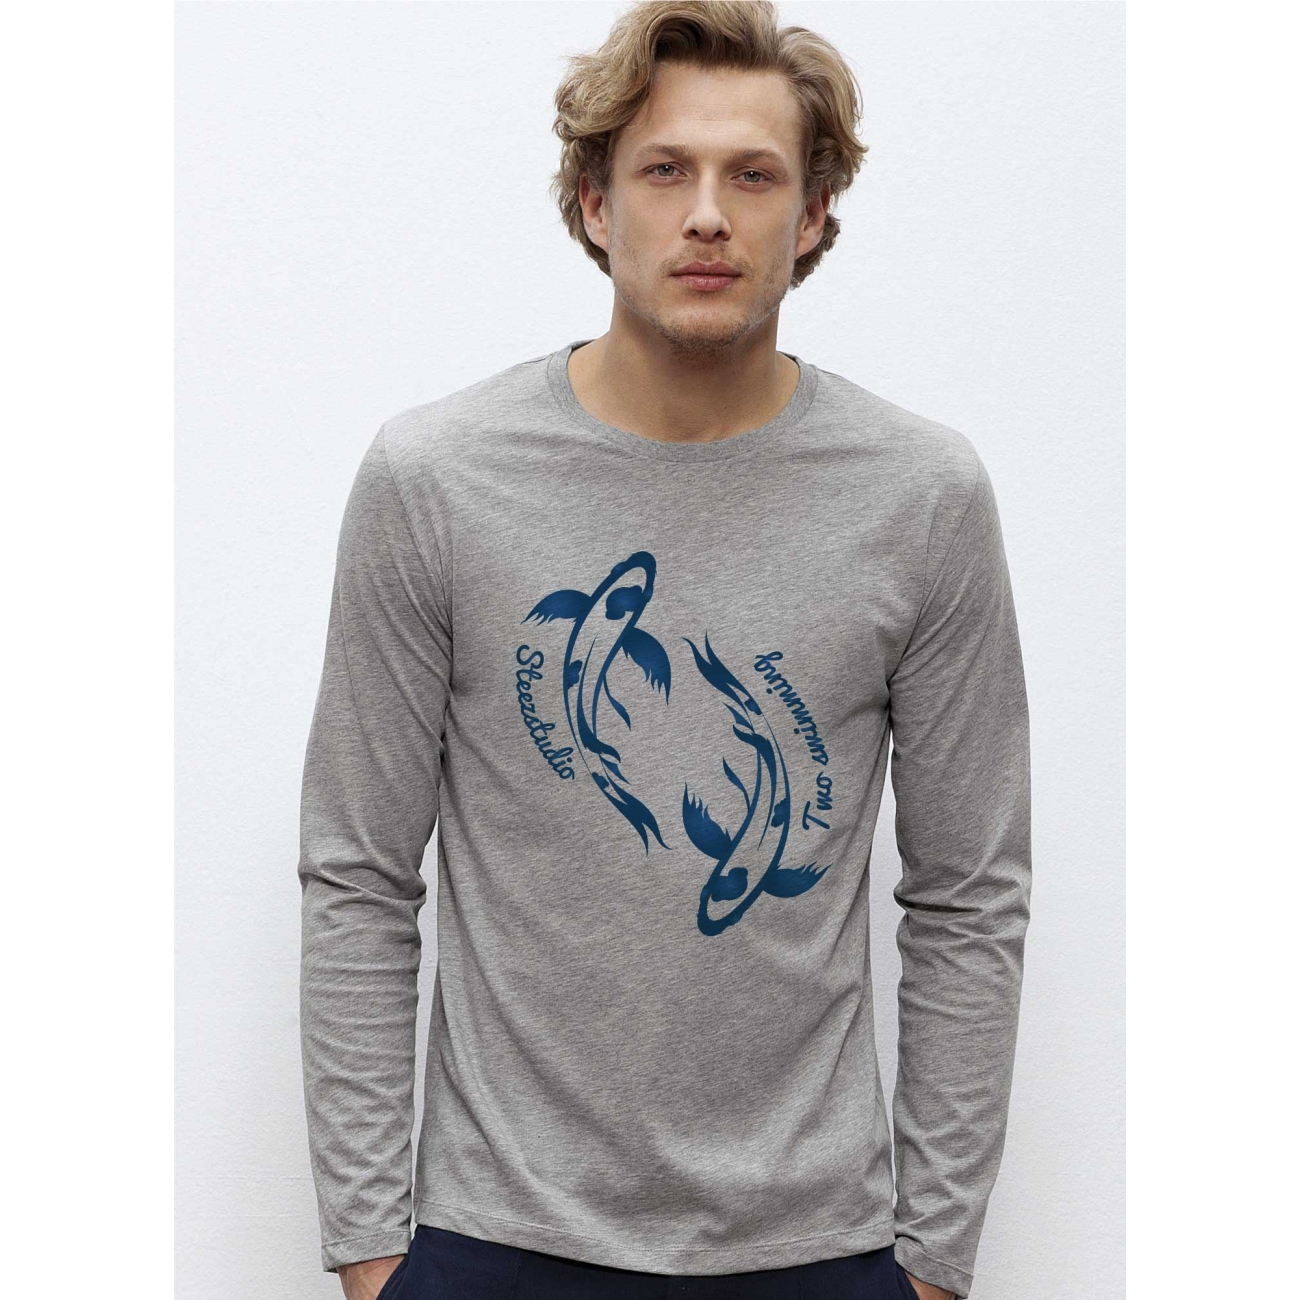 https://tee-shirt-bio.com/2989-thickbox_default/manches-longues-tee-shirt-homme-100-coton-bio-doux-equitable-gris-chine-poissons-chines-bleu.jpg